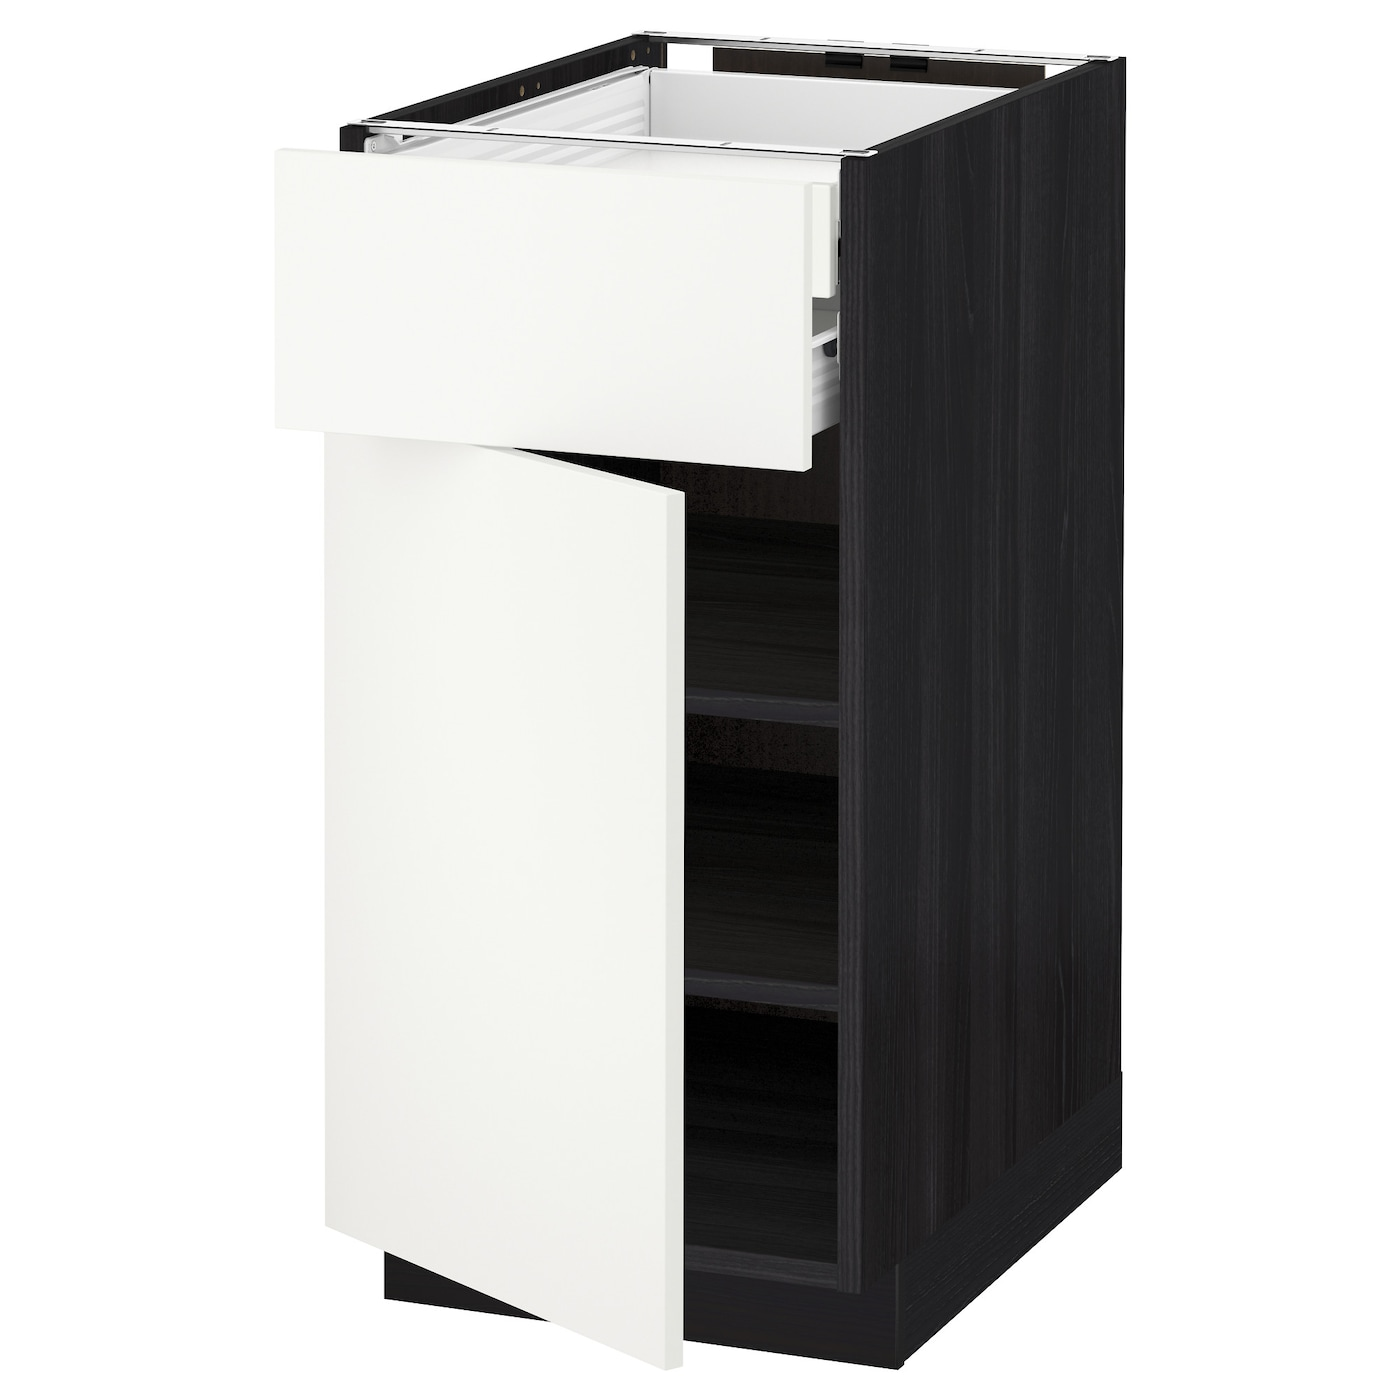 IKEA METOD/FÖRVARA base cab dr/front/shlvs/2 low drwrs Sturdy frame construction, 18 mm thick.